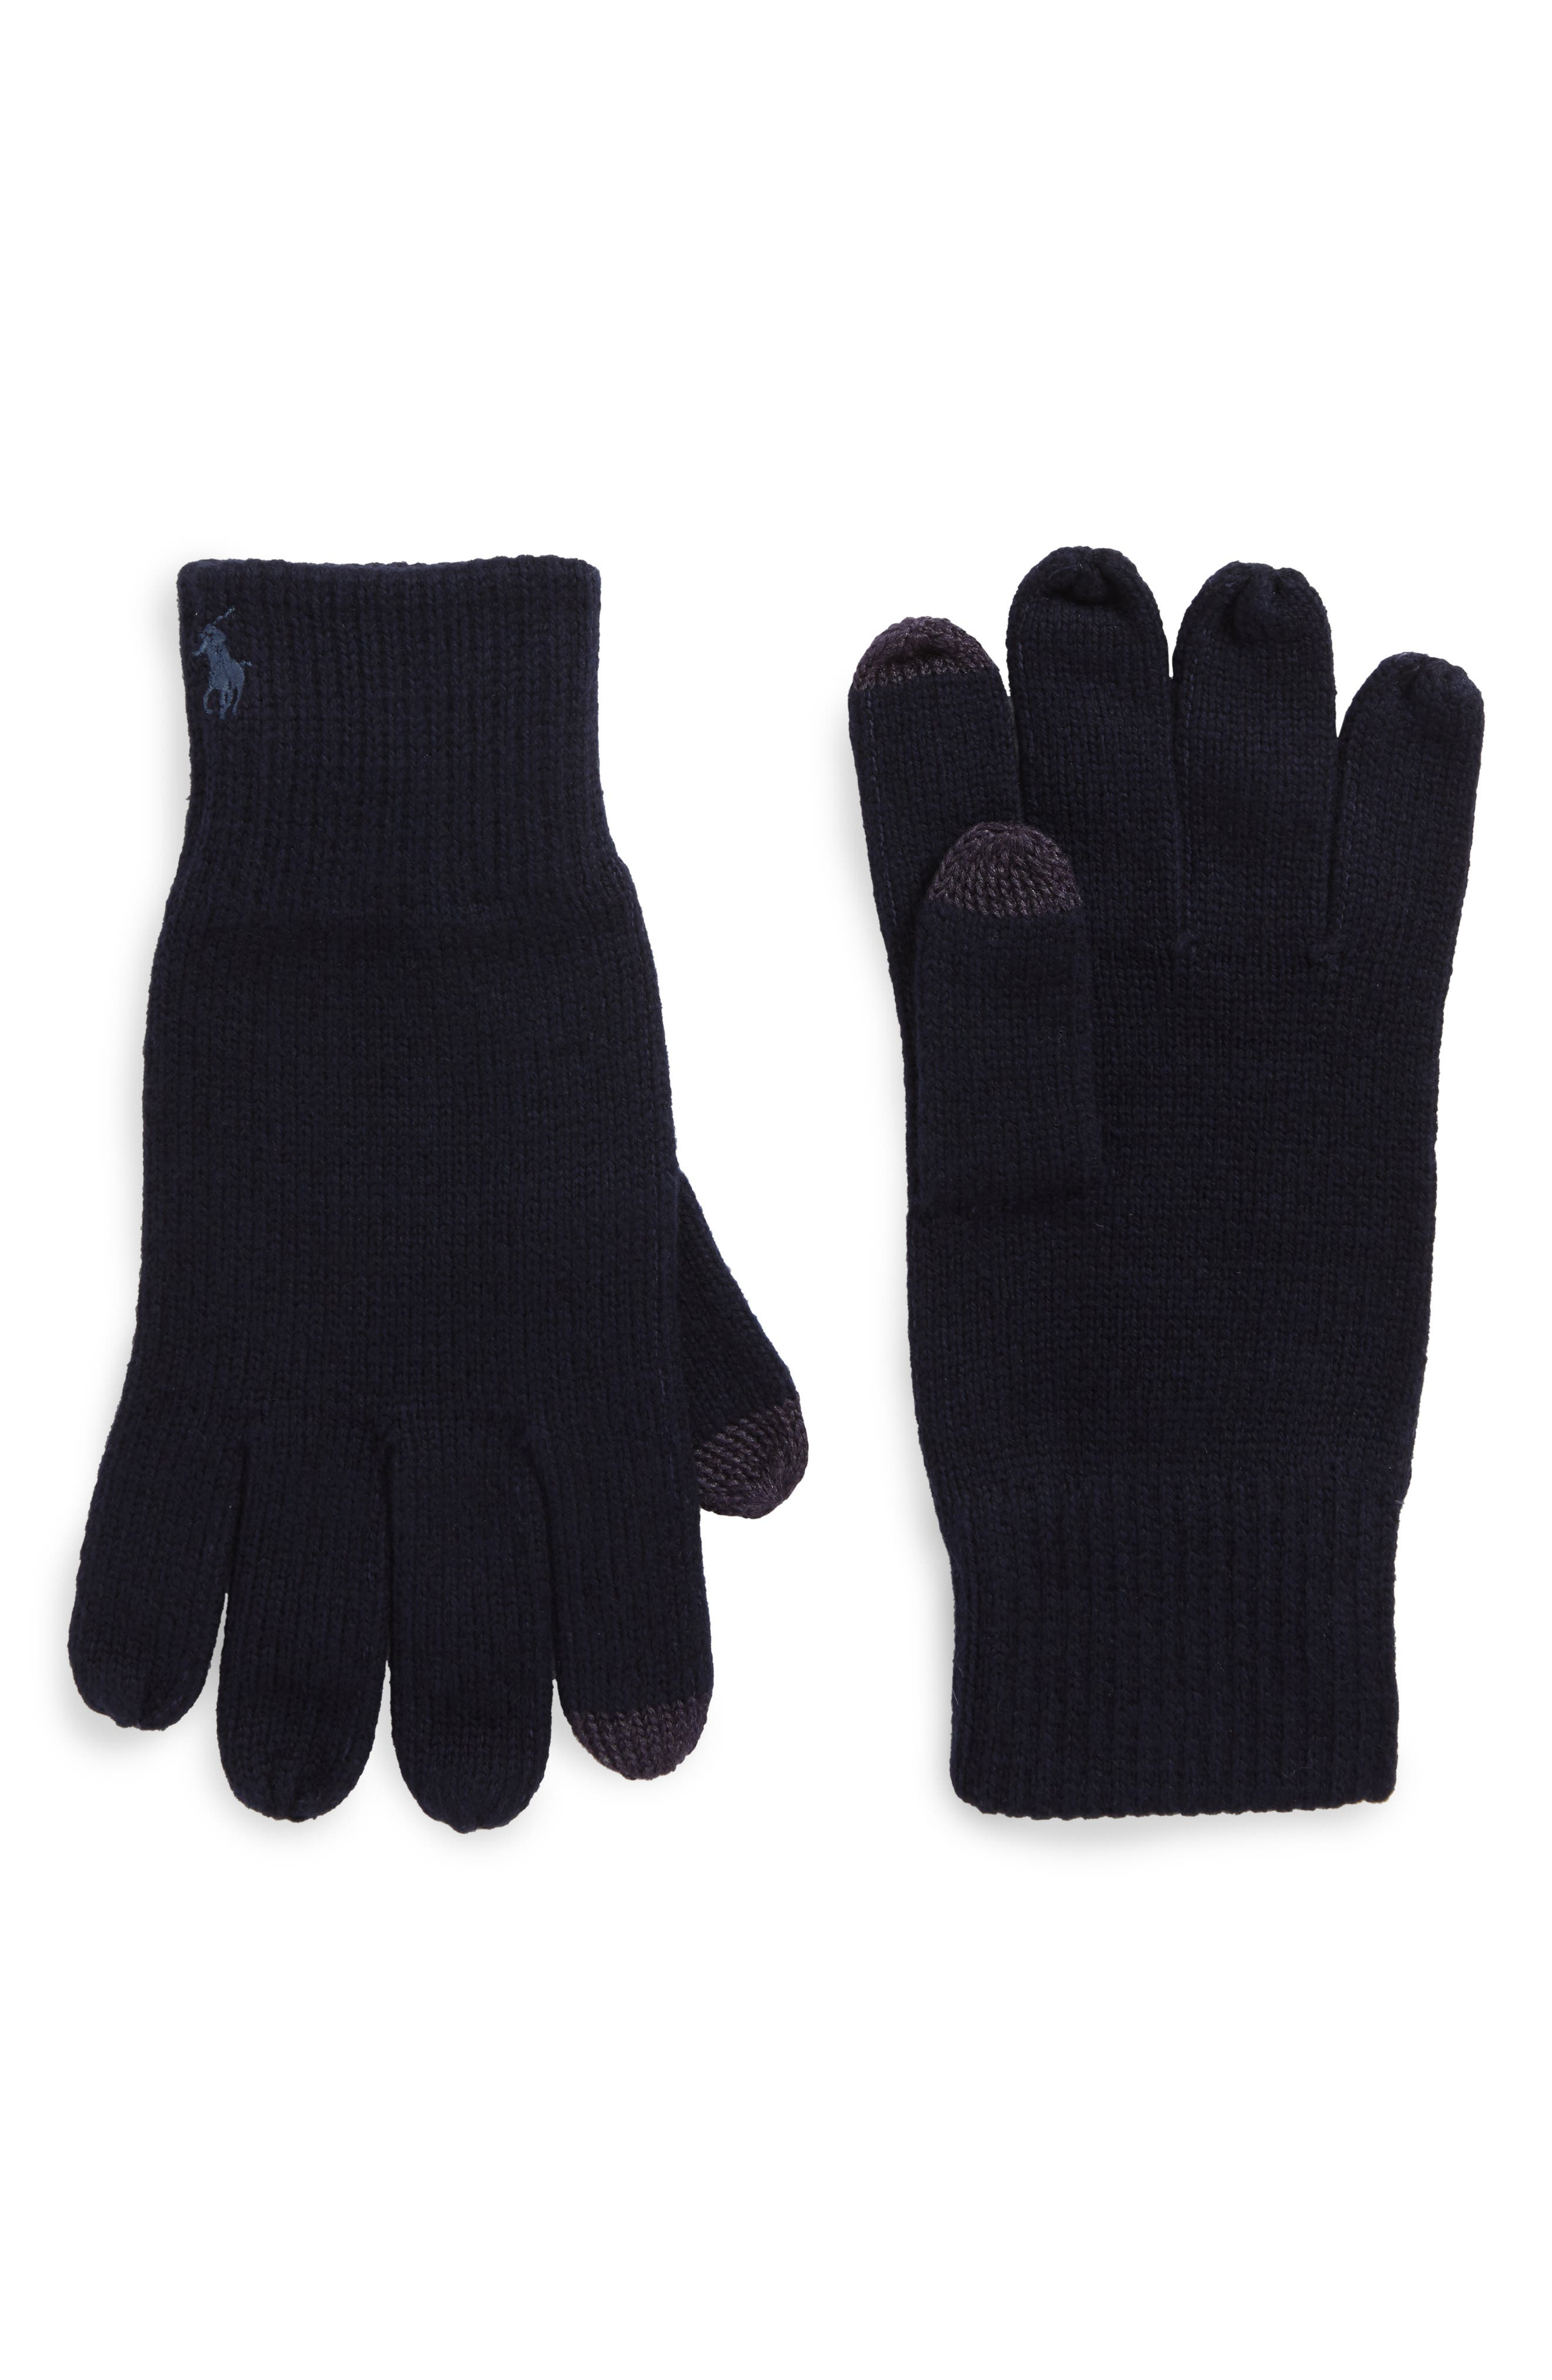 Polo Ralph Lauren Knit Tech Gloves